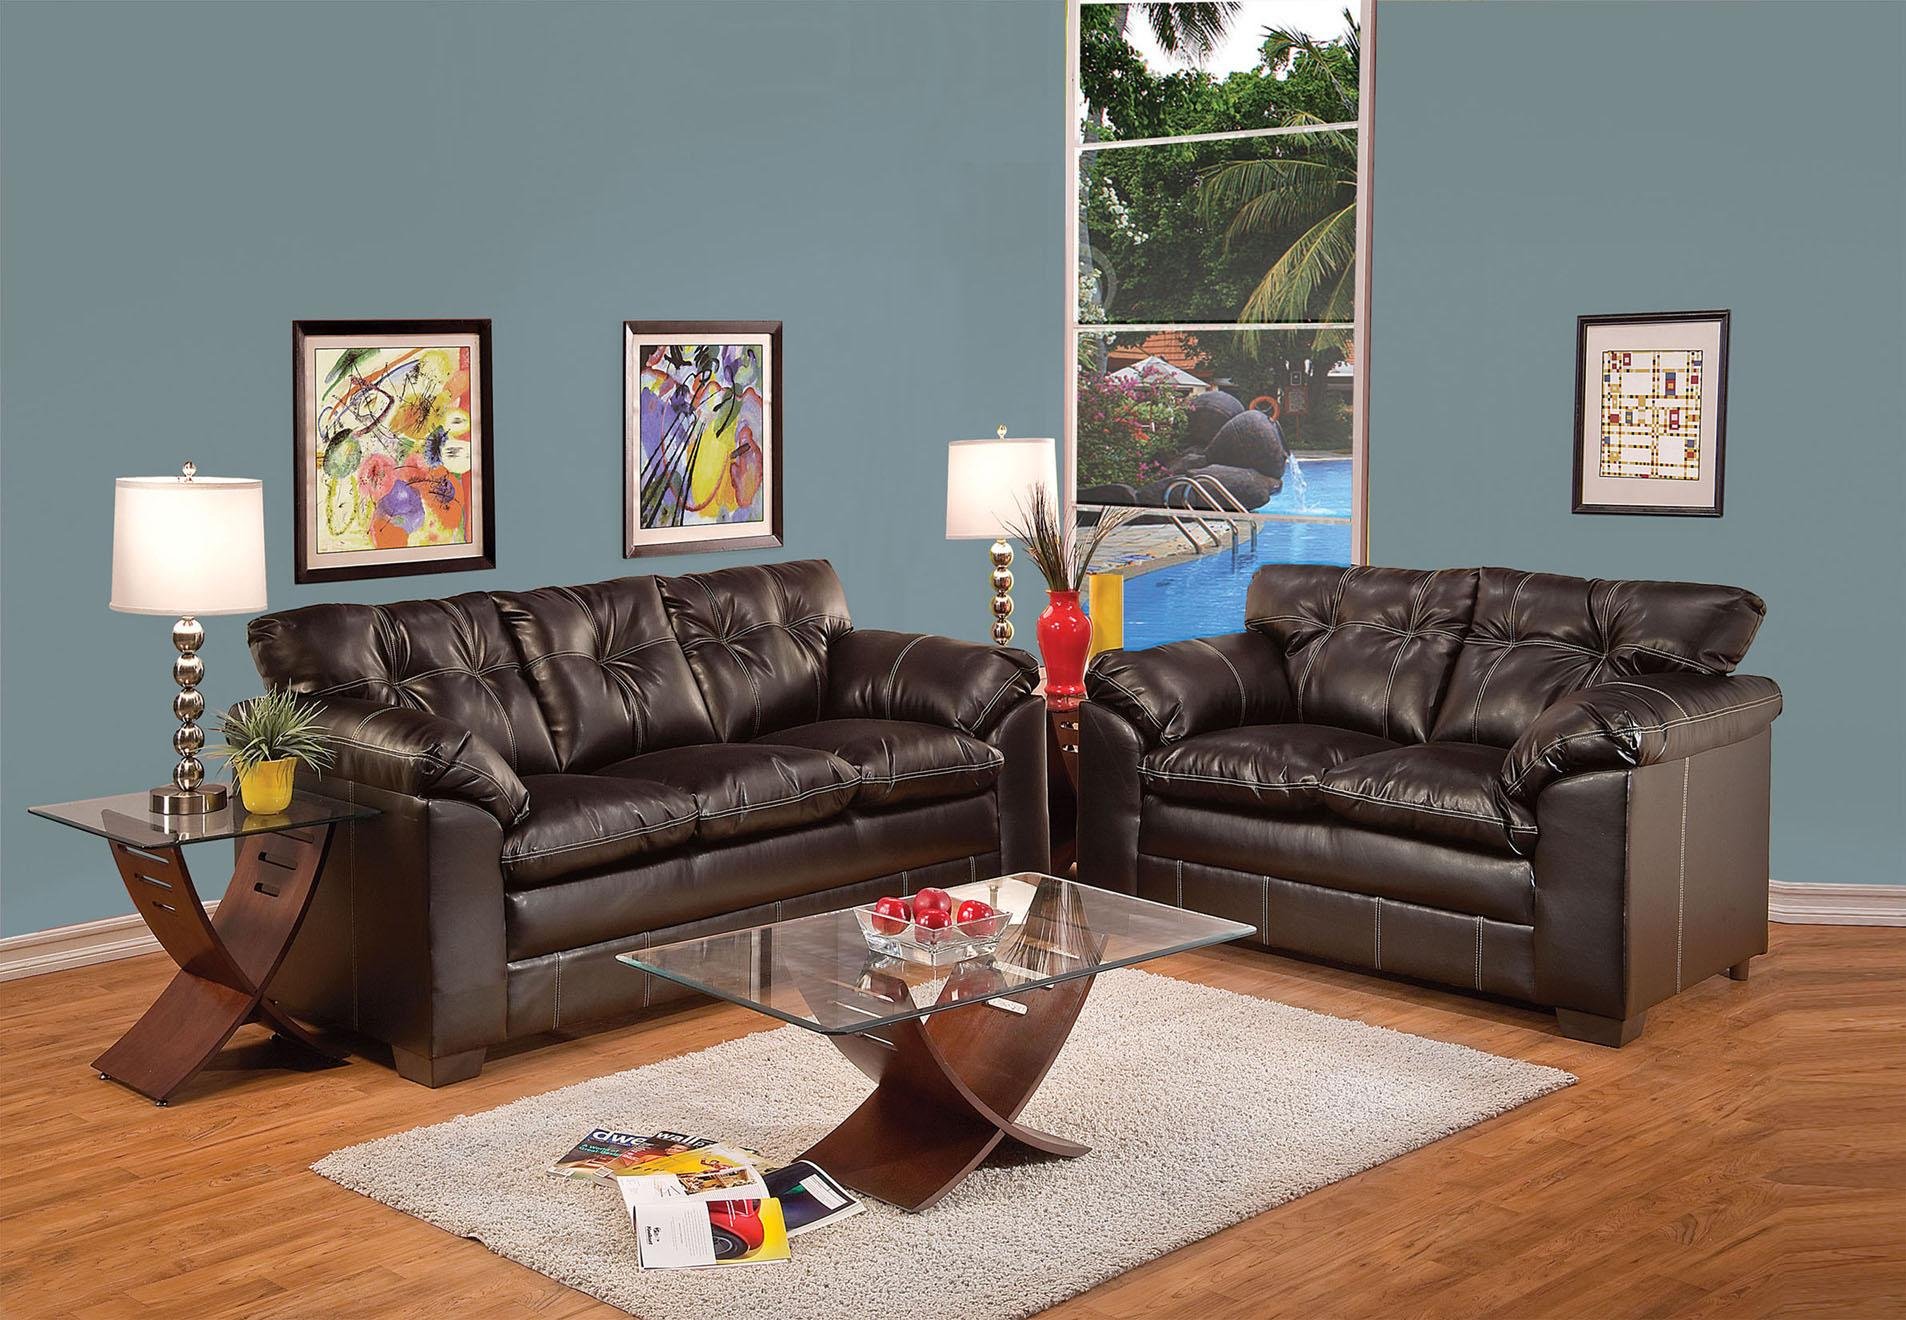 Acme Furniture Hayley Stationary Living Room Group - Item Number: 50350 Living Room Group 1